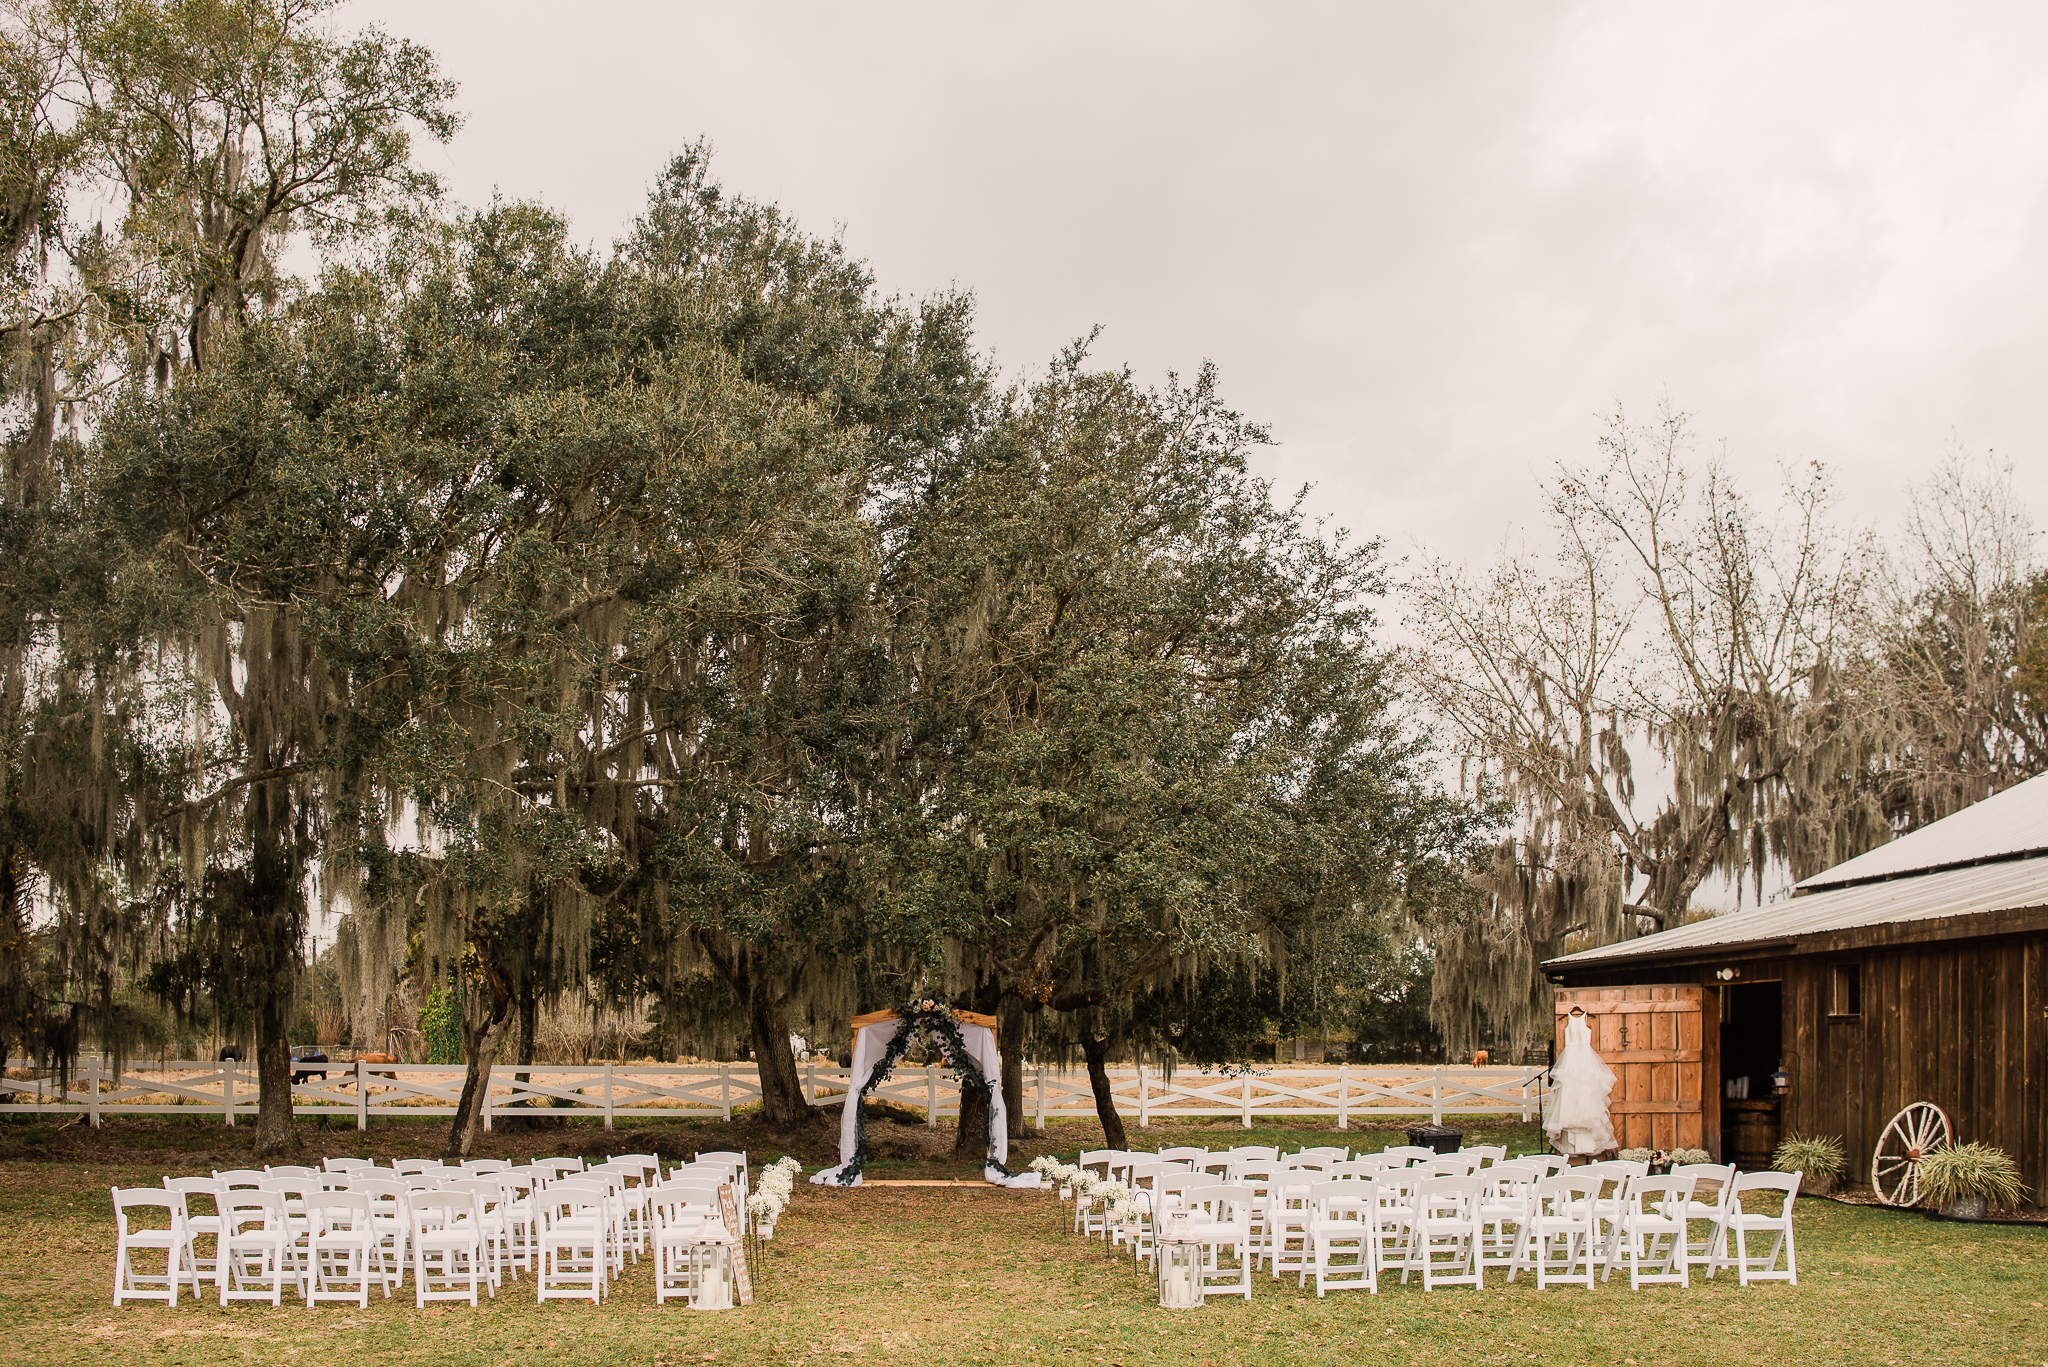 TAMPA_WEDDING_PHOTOGRAPHER_DRMZ_SPARROW_BARN_8.jpg